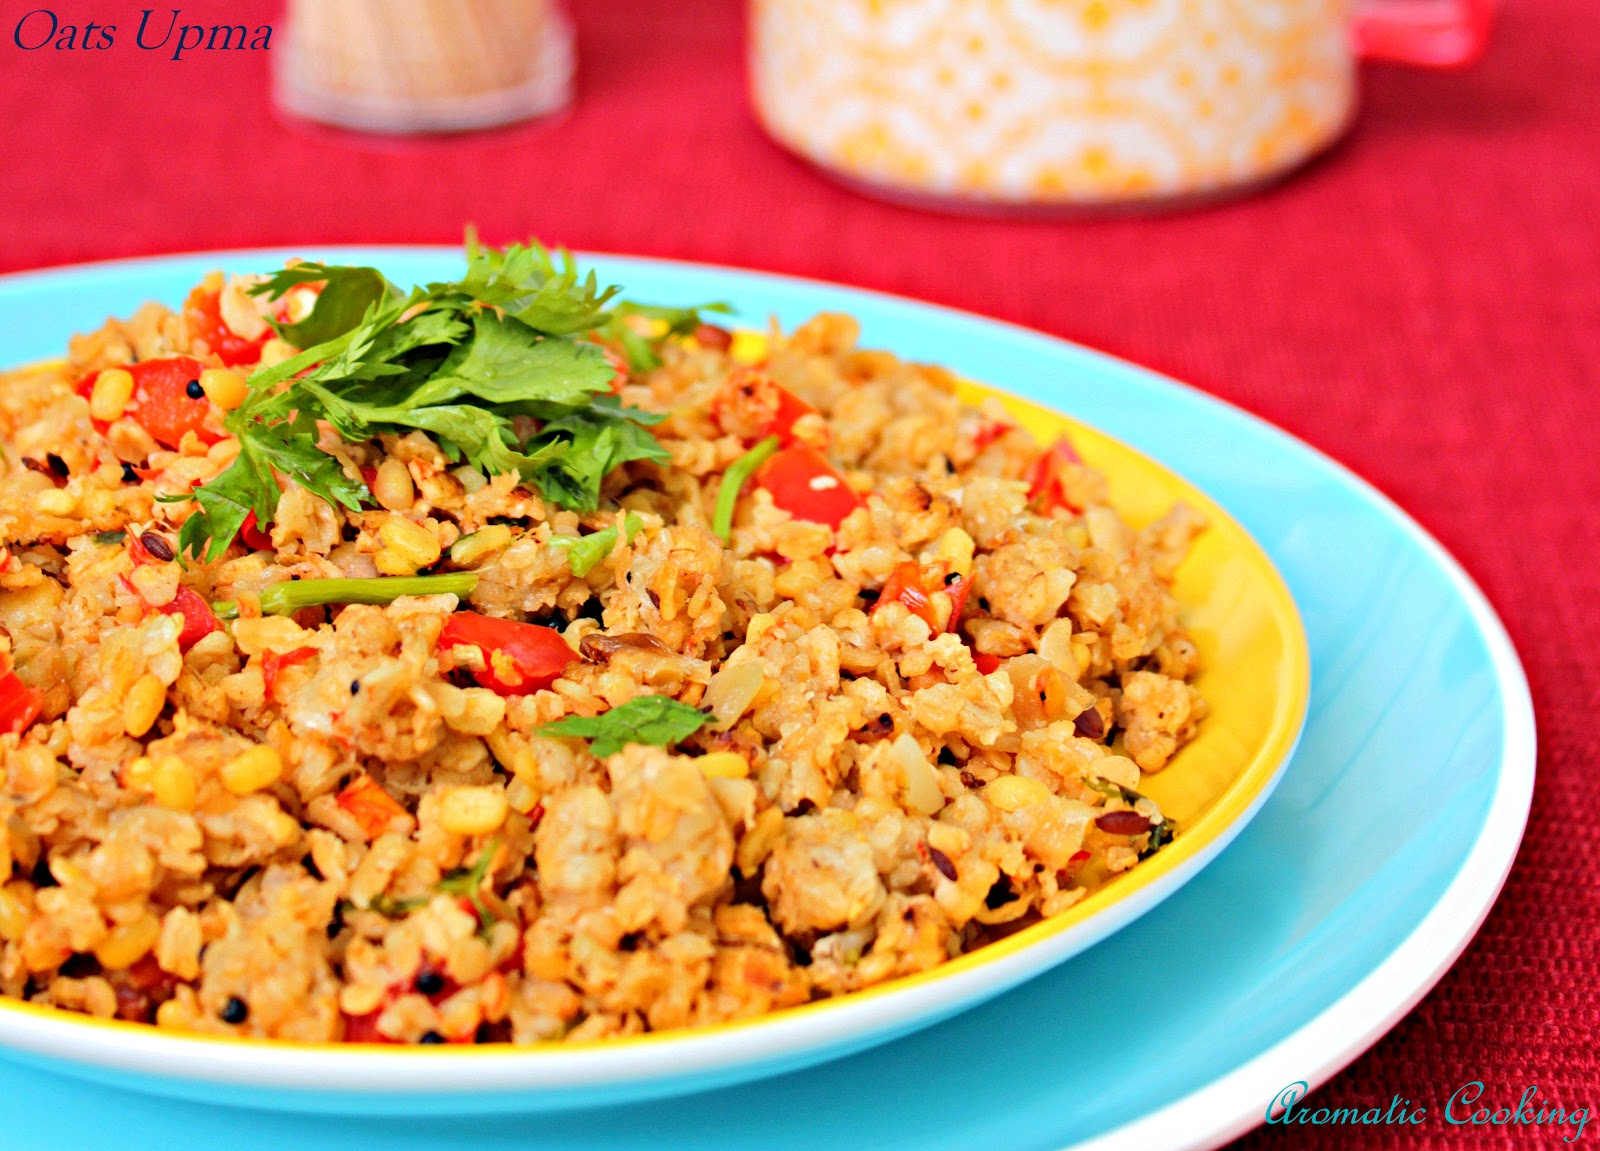 how to prepare upma with oats